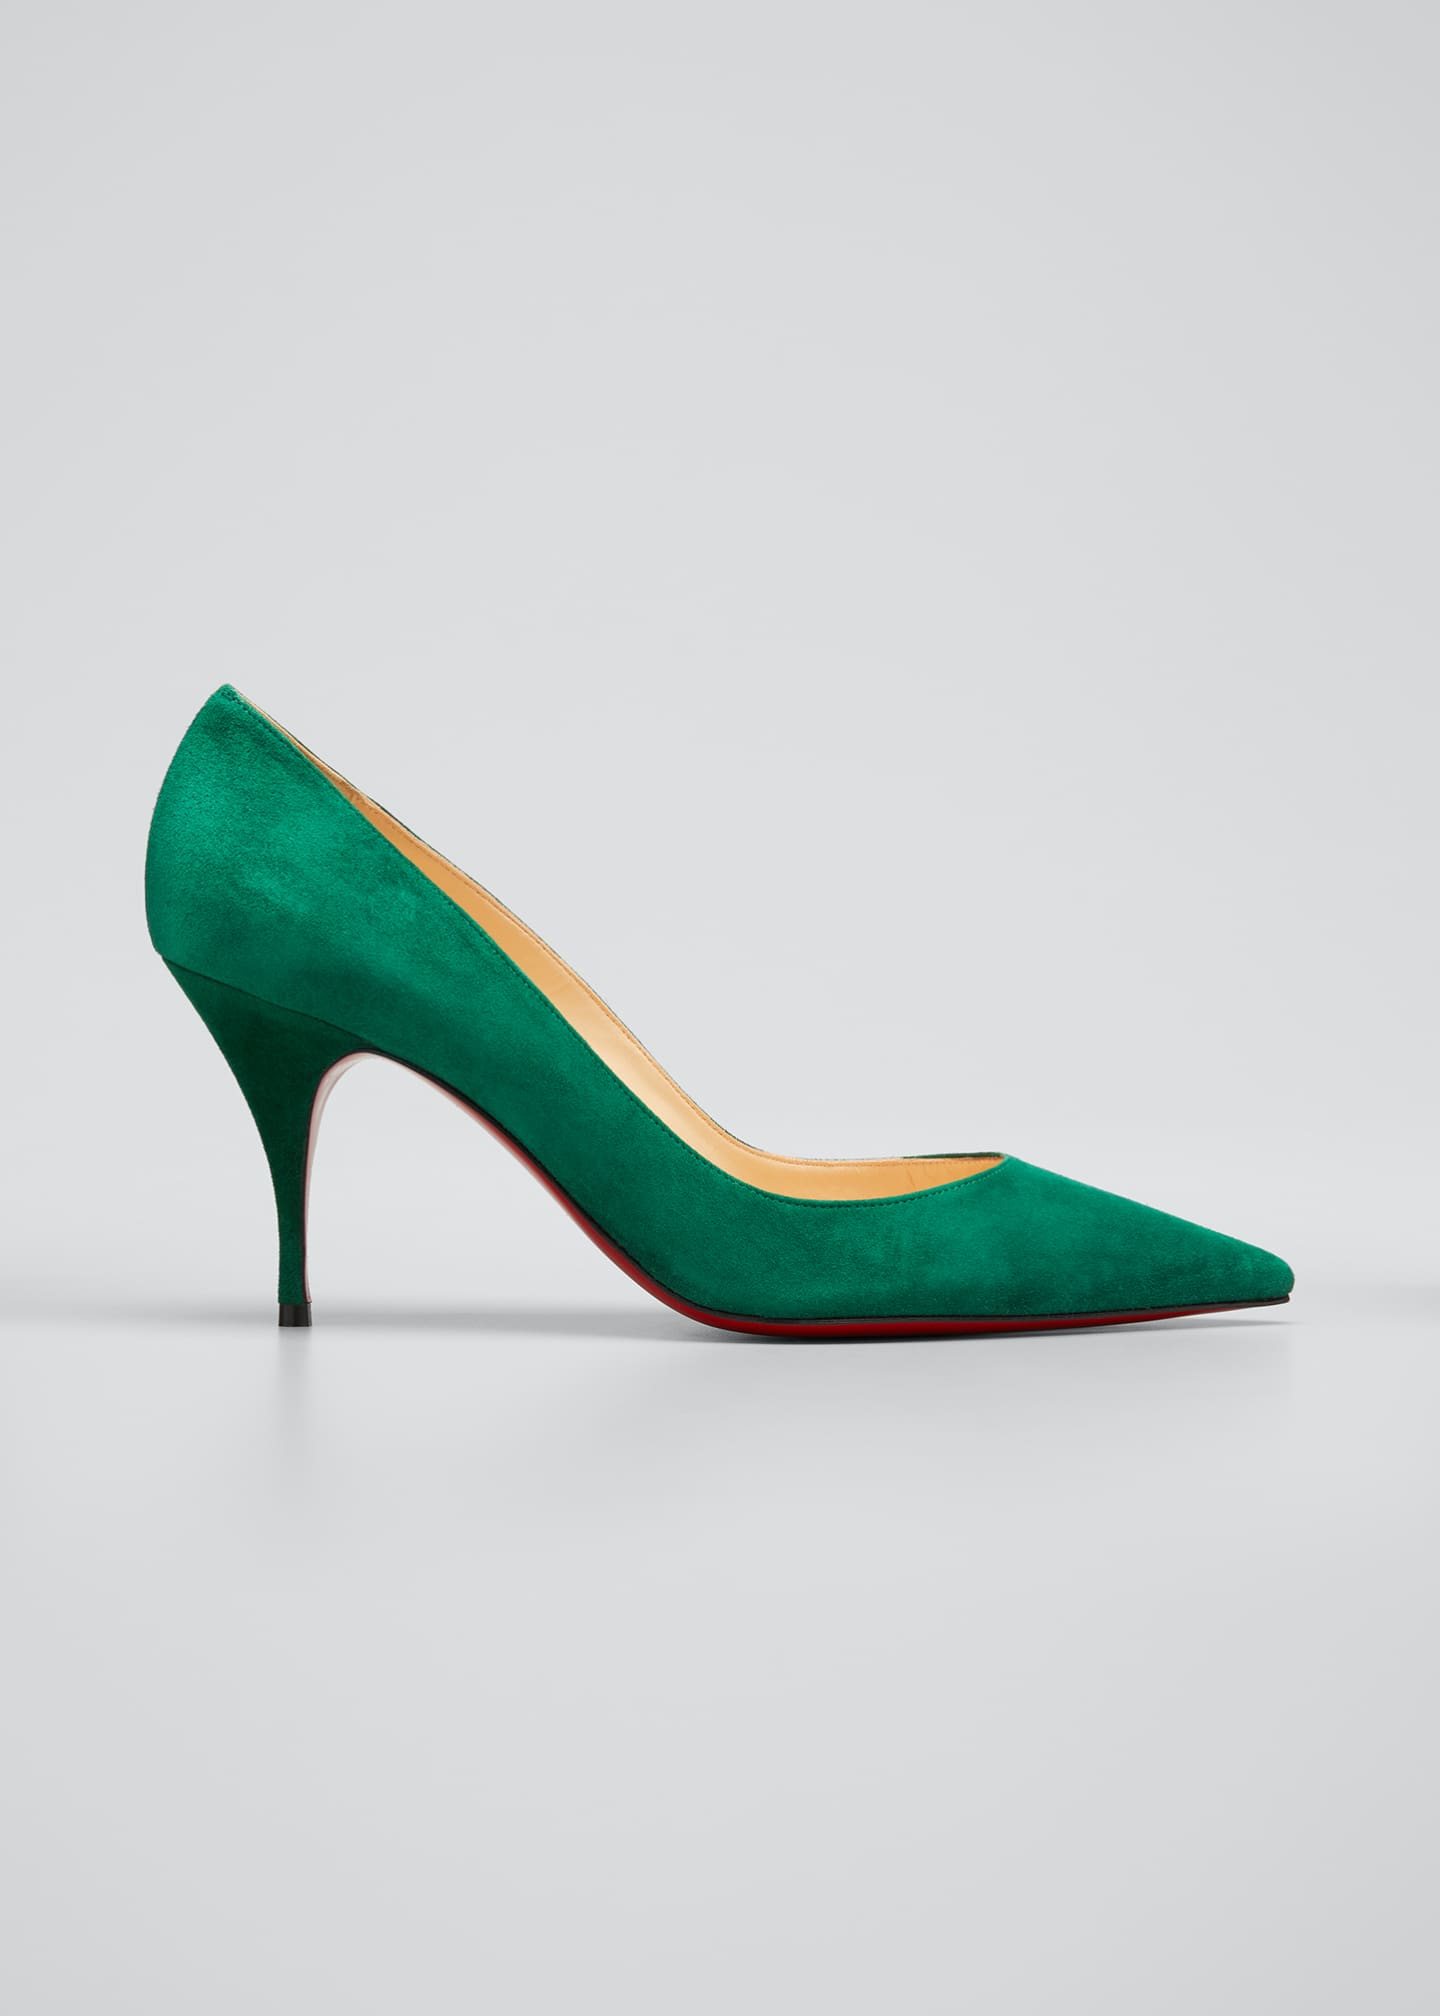 Image 1 of 5: Clare 80mm Suede Red Sole Pumps